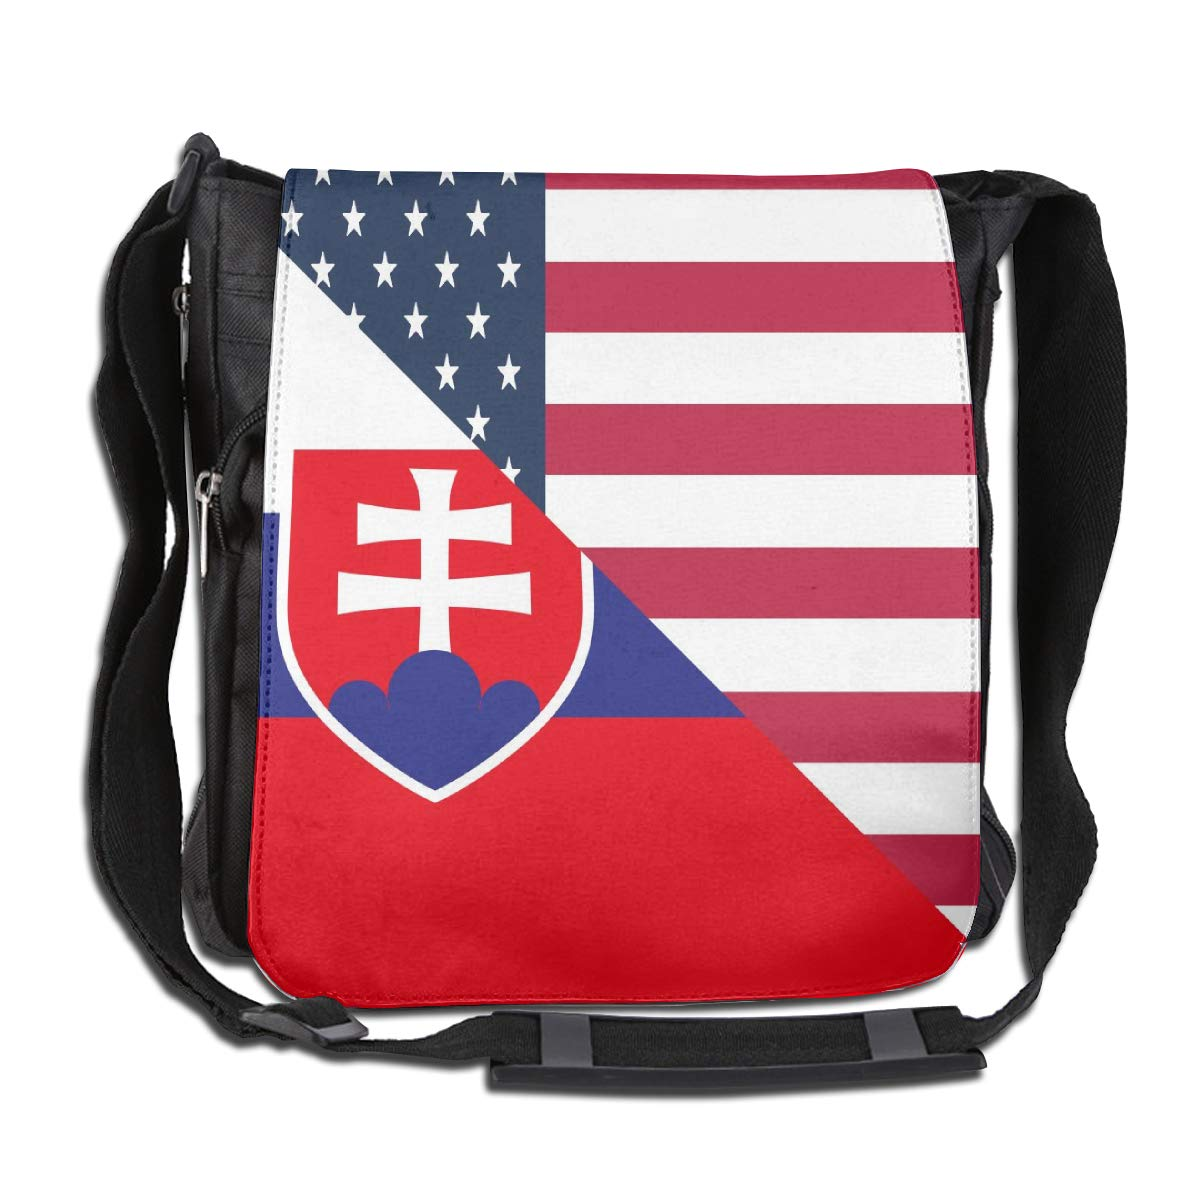 Unisex Classic Satchel Messenger Bags American And Slovenia Flag Crossbody Shoulder Bag School Bags For School//Work//Trips